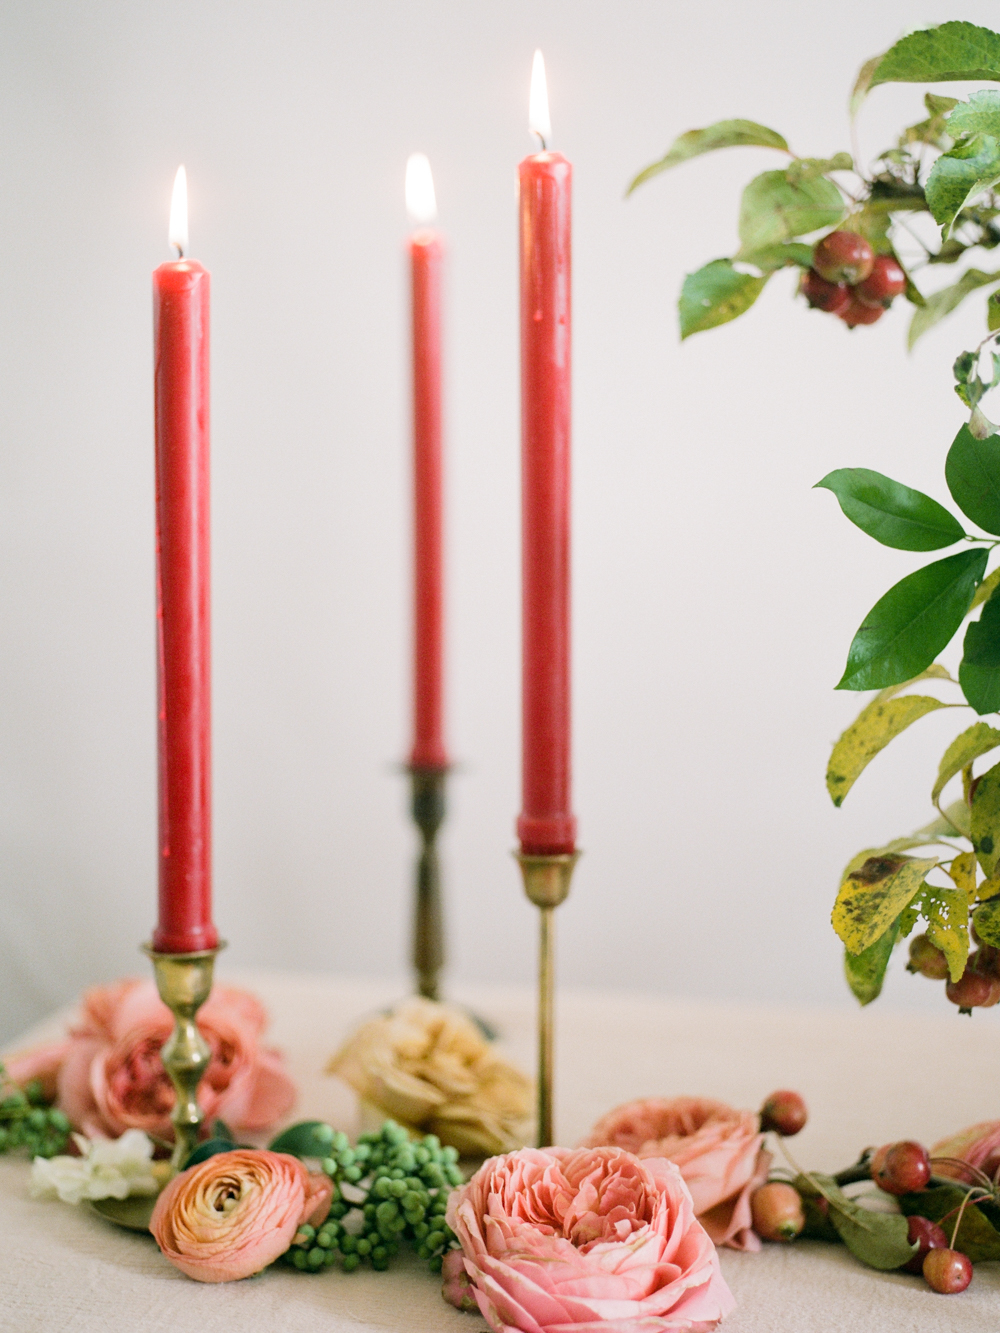 film wedding photographer - Houston wedding photographer - intimate wedding photographer - Christine Gosch - fall wedding inspiration - blush fall wedding - wedding flowers - fall wedding flowers - wedding table inspo-4- Maxit Flower Design.jpg